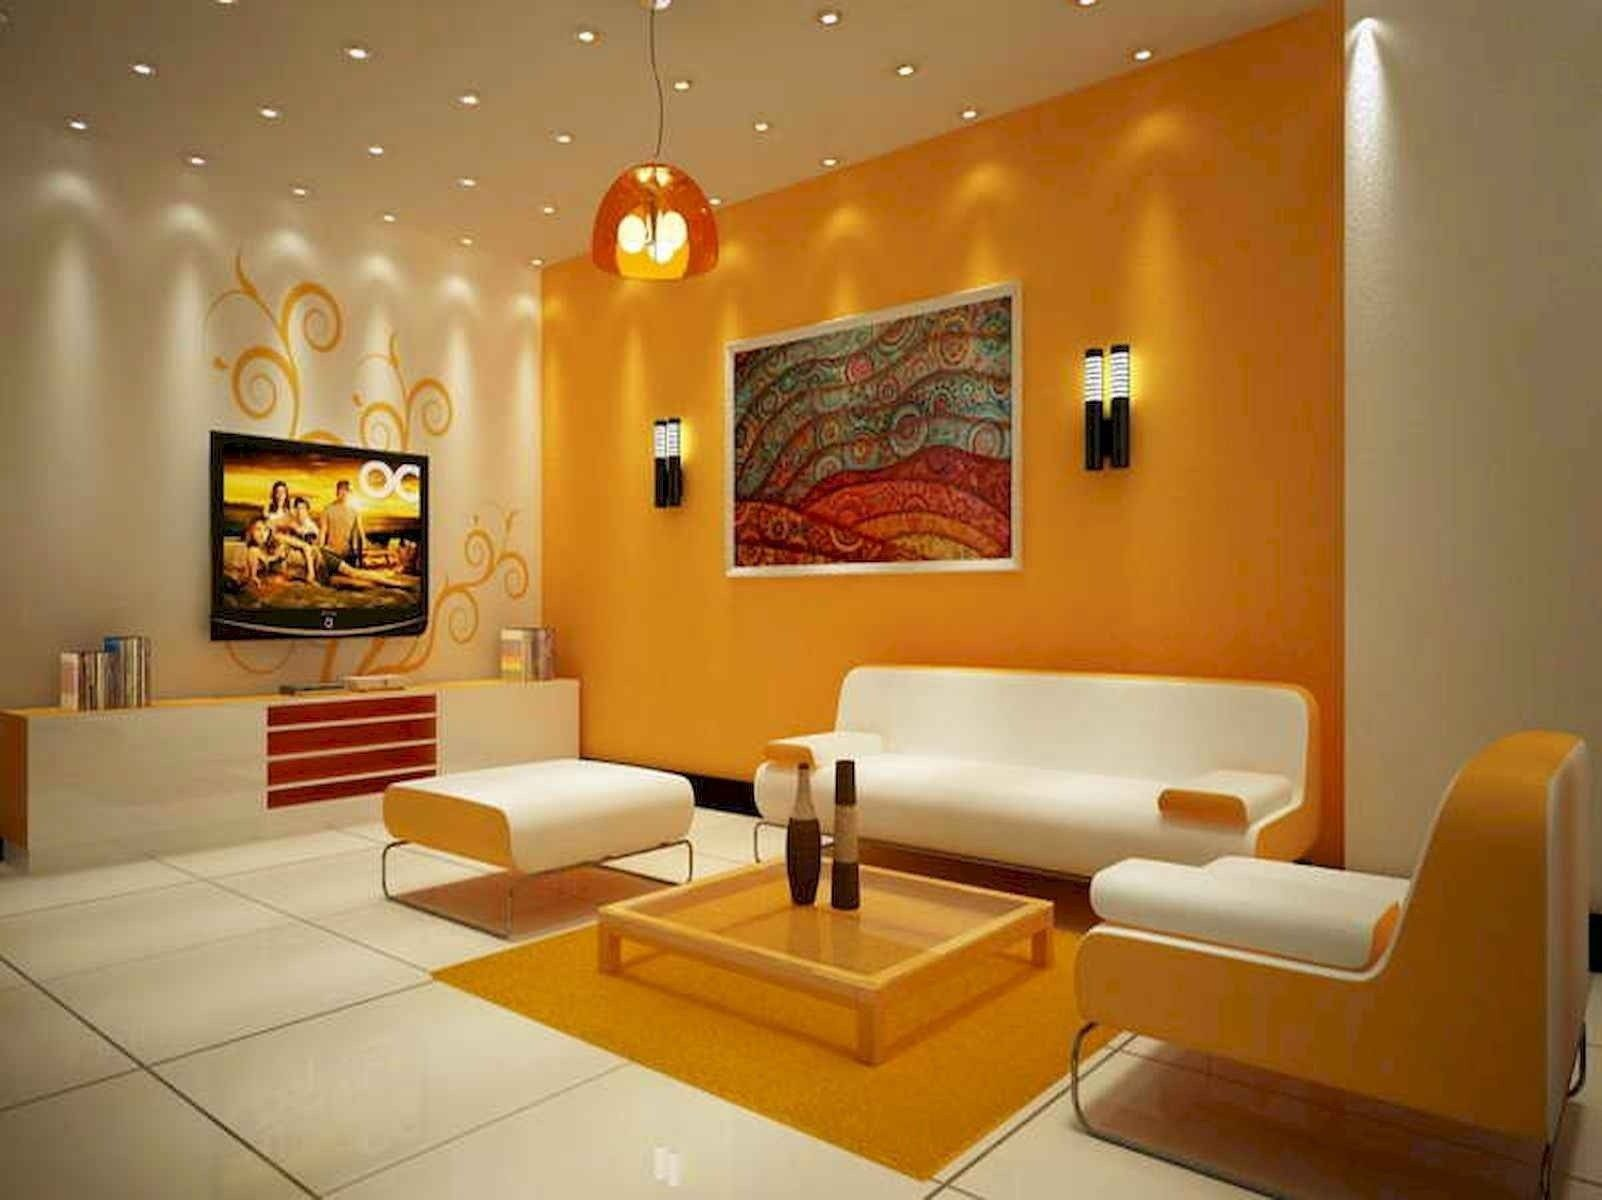 40 Awesome Wall Painting Ideas For Home In 2020 Room Wall Colors Living Room Colors Living Room Orange